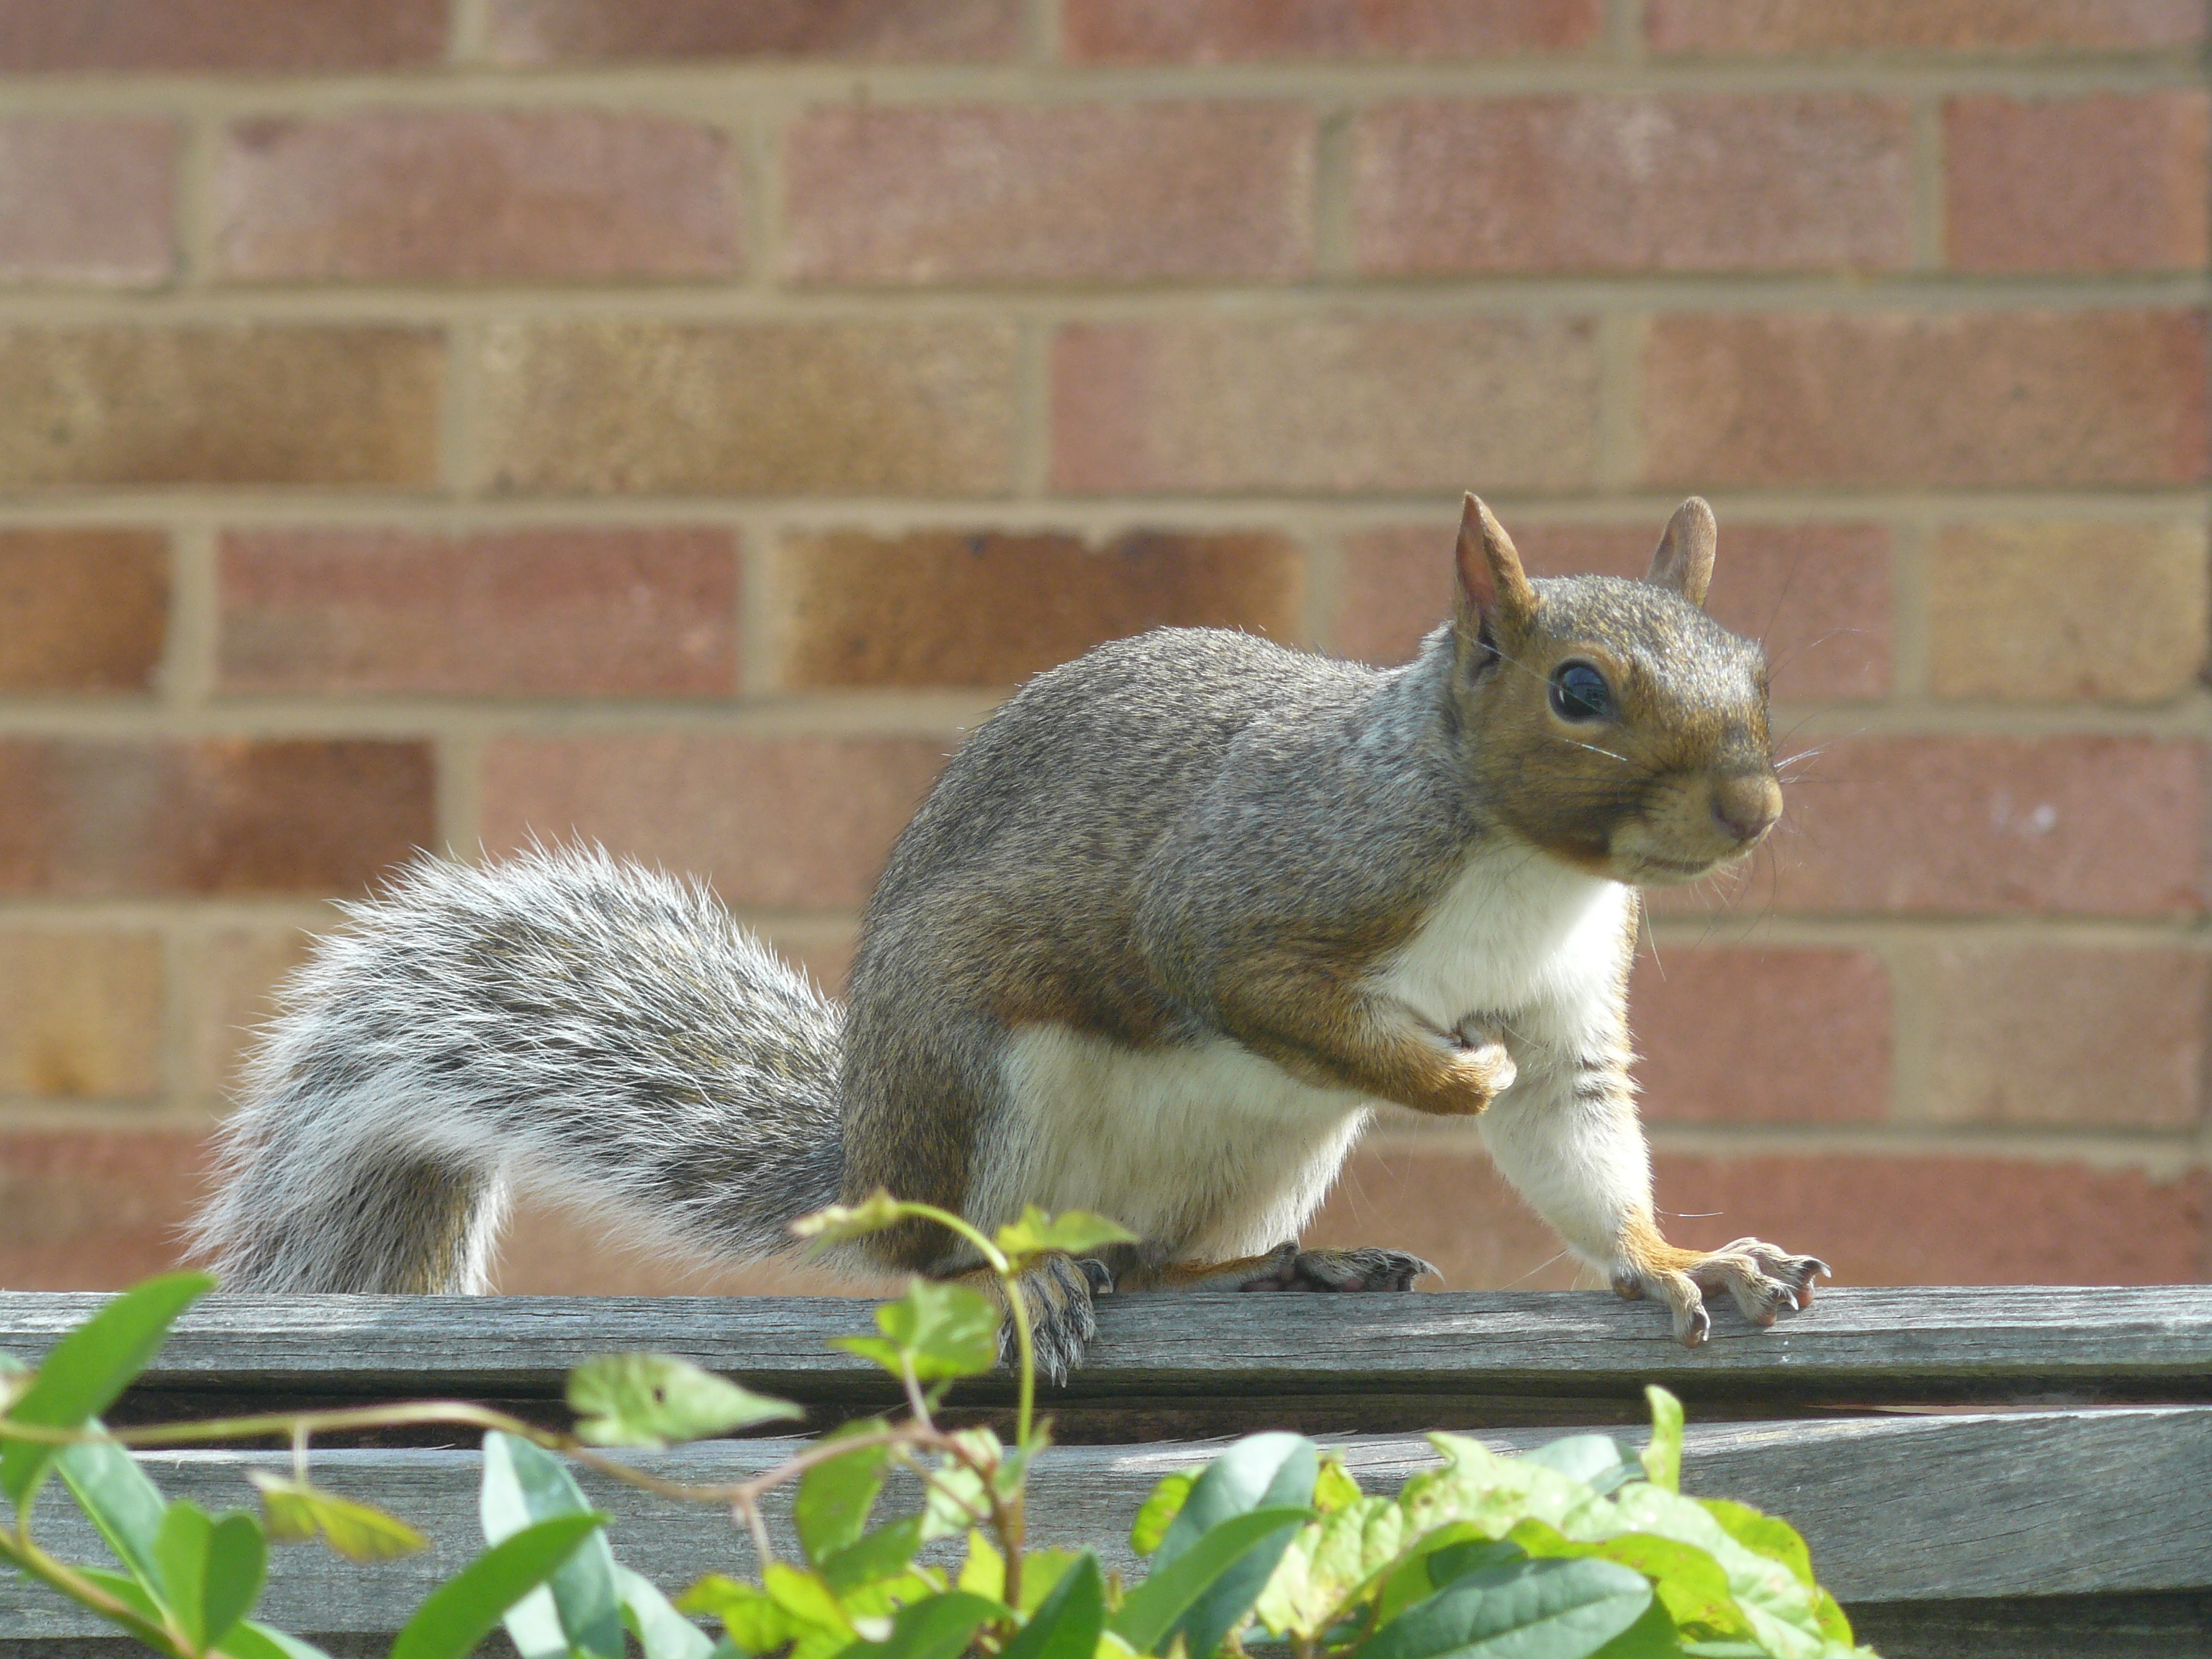 File:Grey-Squirrel-On-Garden-Fence-UK-Side-View.JPG - Wikimedia Commons